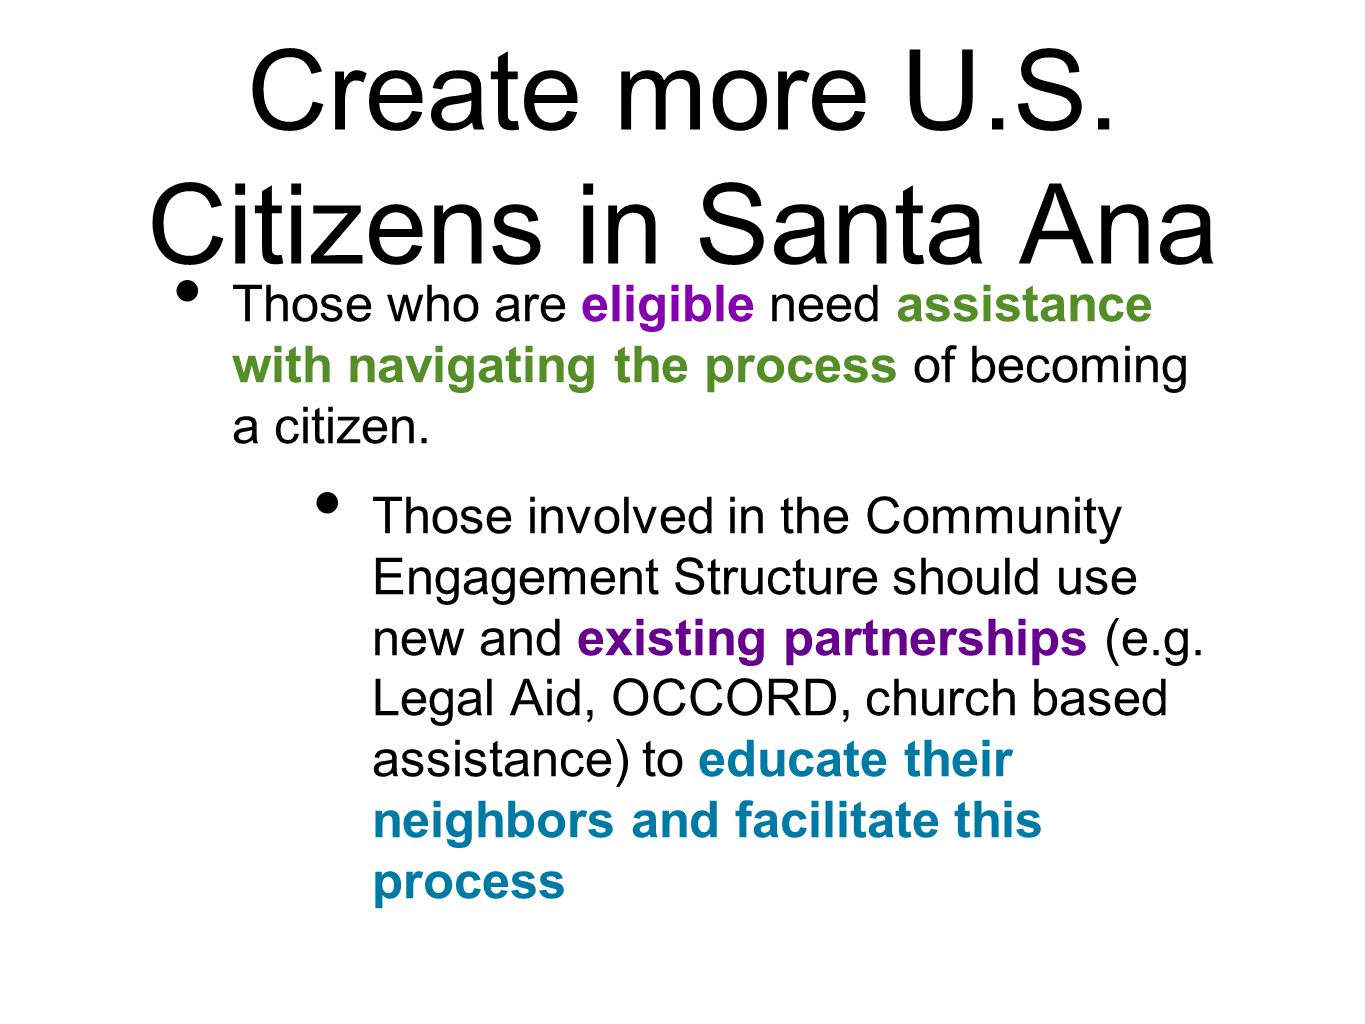 Create more U.S. Citizens in Santa Ana Those who are eligible need assistance with navigating the process of becoming a citizen. Those involved in the